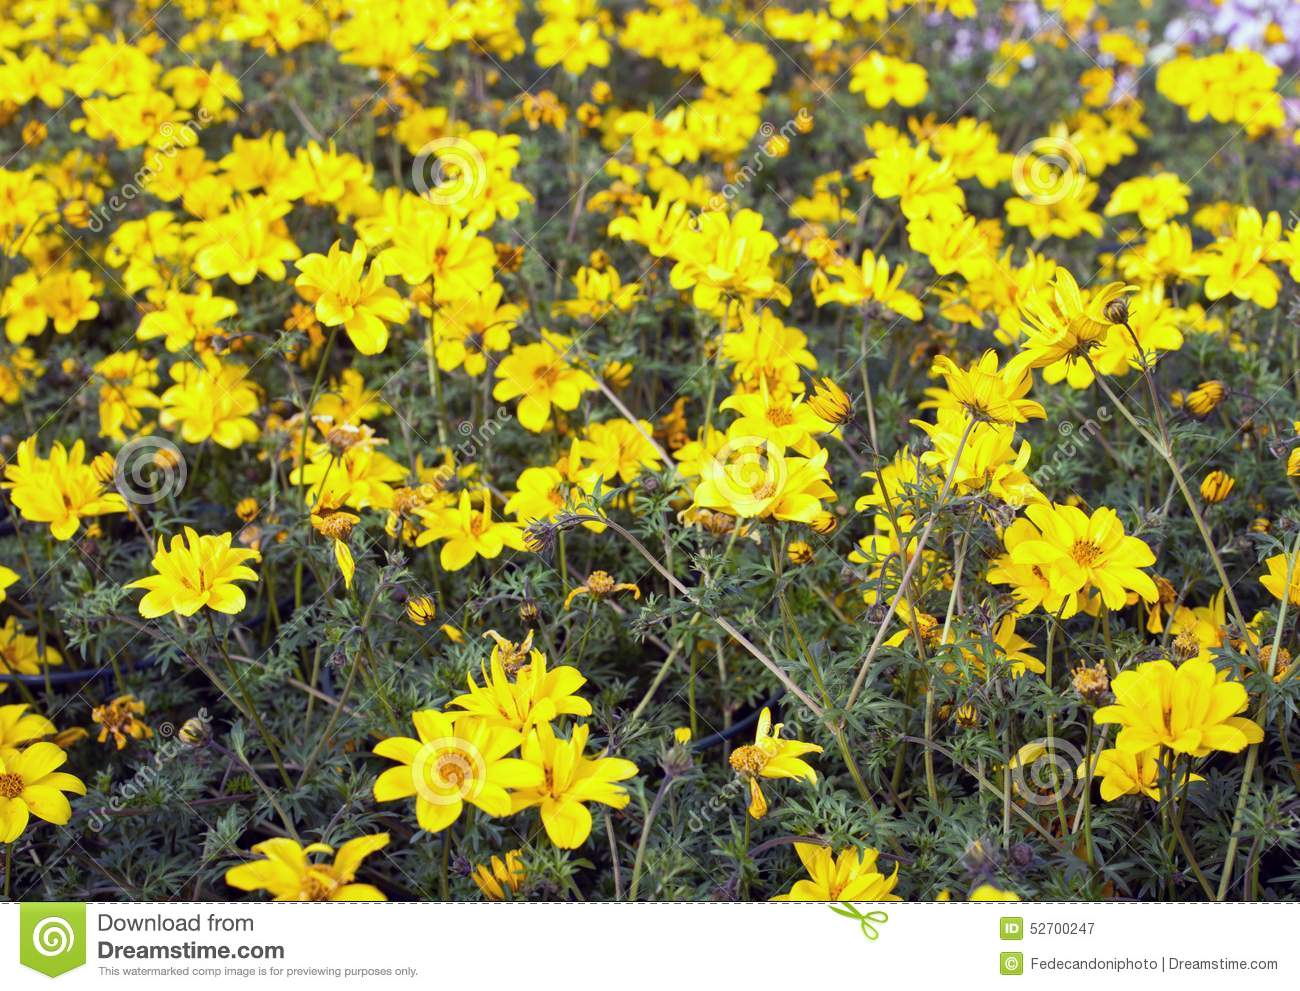 Yellow flowers called bidens in spring stock image image of nature download yellow flowers called bidens in spring stock image image of nature marigolds mightylinksfo